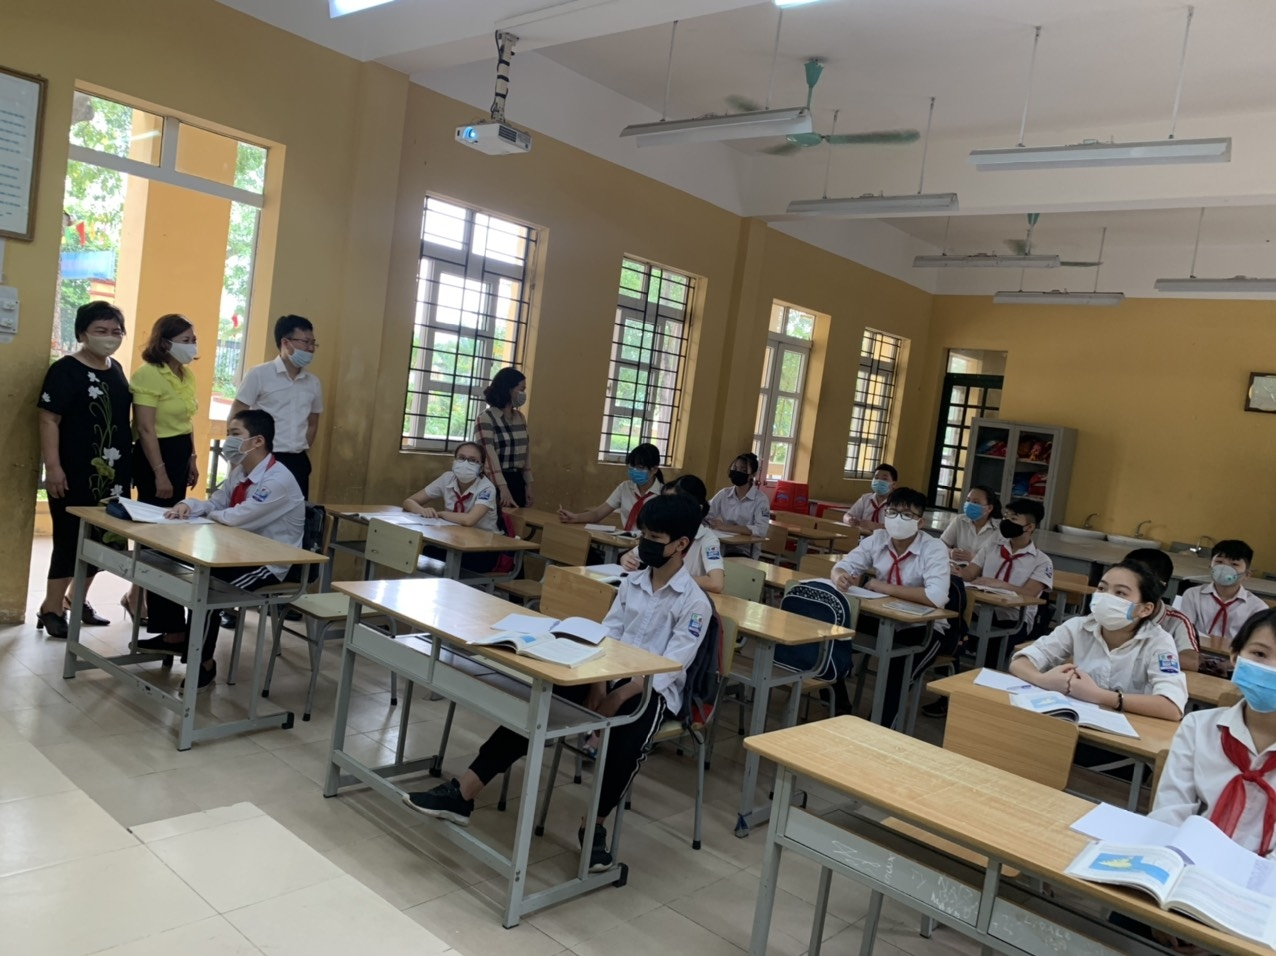 first day of children in hanoi and ho chi minh city to return schools photo story